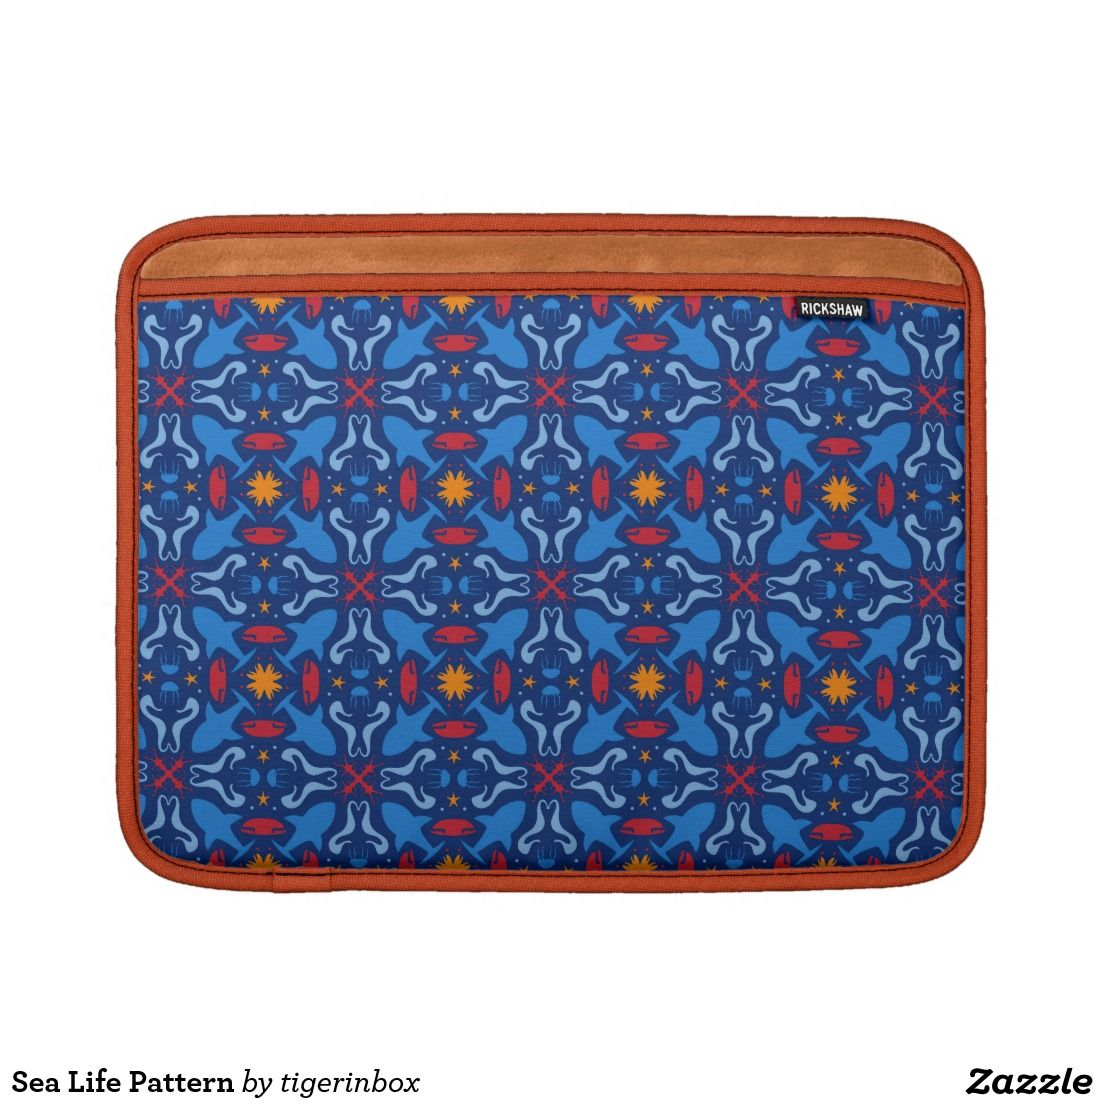 Rickshaw MacBook Air sleeve with orange interior lining. Cute marine beings (such as sharks, starfishes, seahorses, squids, jellyfishes, red corals) create a sea life themed pattern.